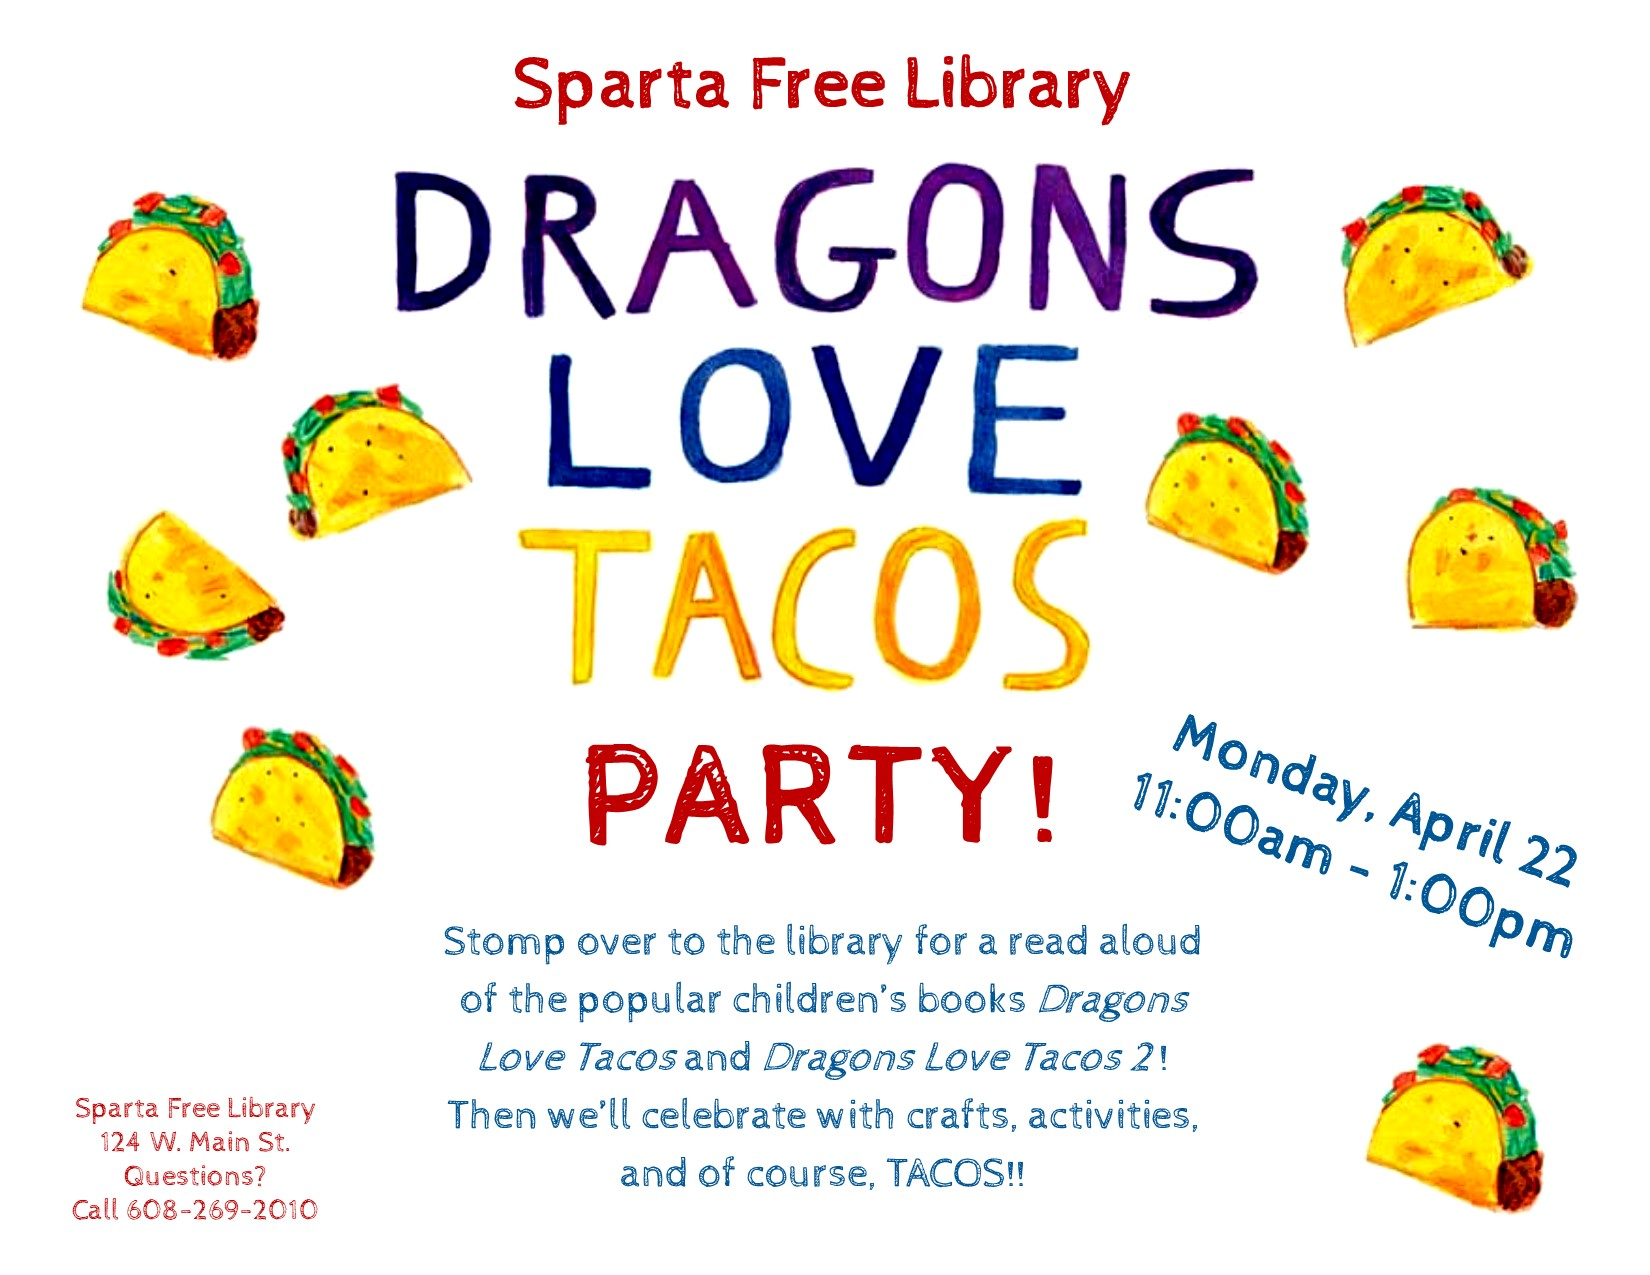 Dragons Love Tacos Party poster